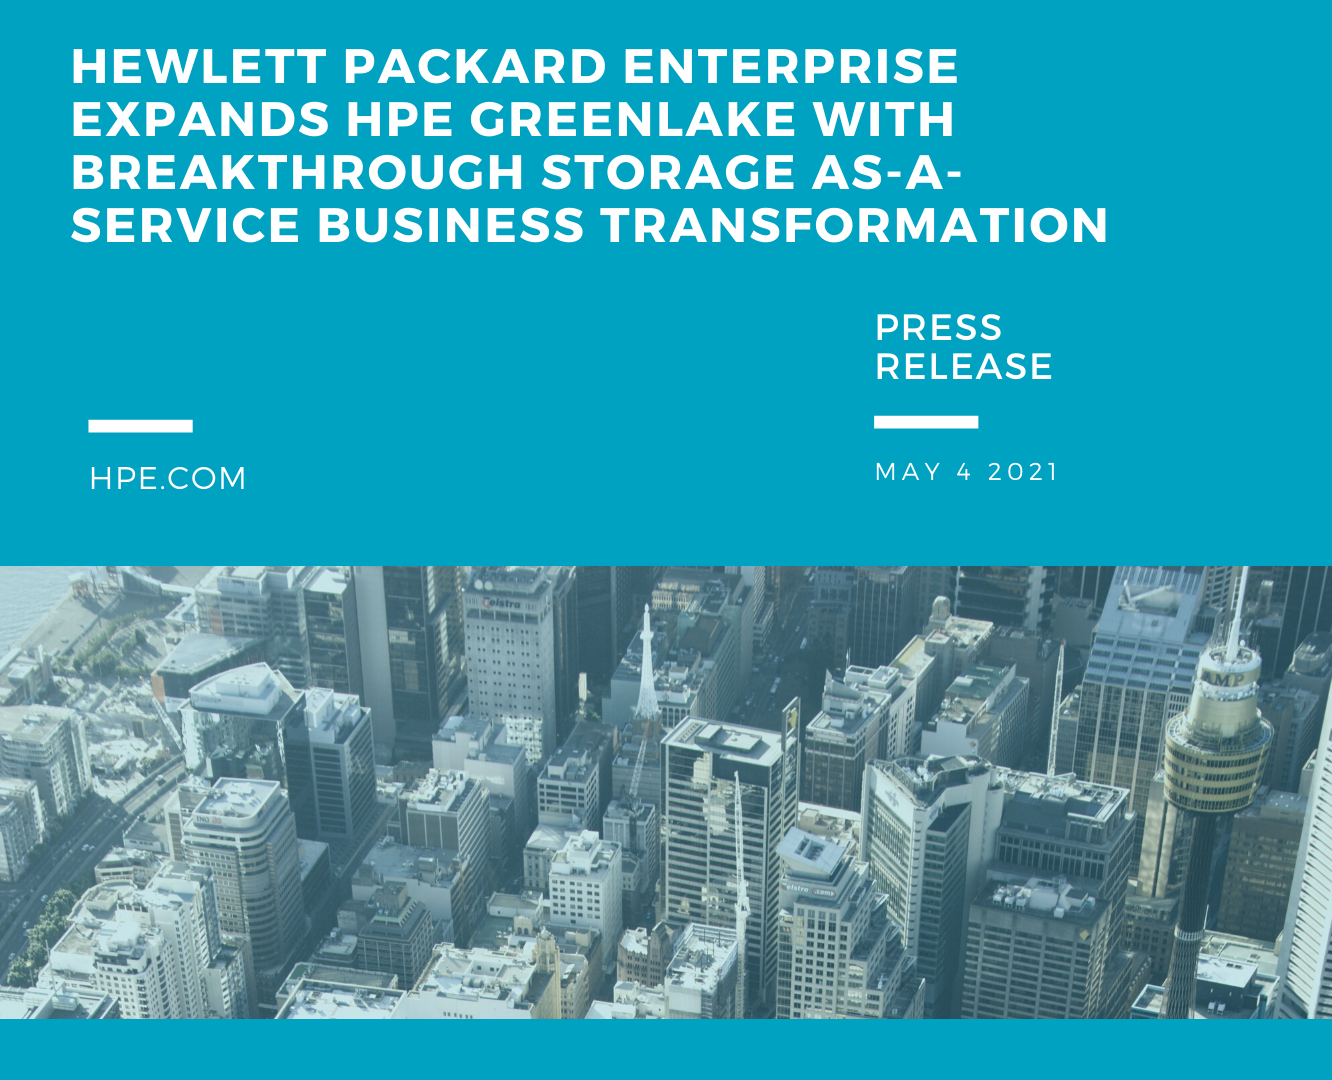 Hewlett Packard Enterprise expands HPE GreenLake with breakthrough storage as-a-service business transformation